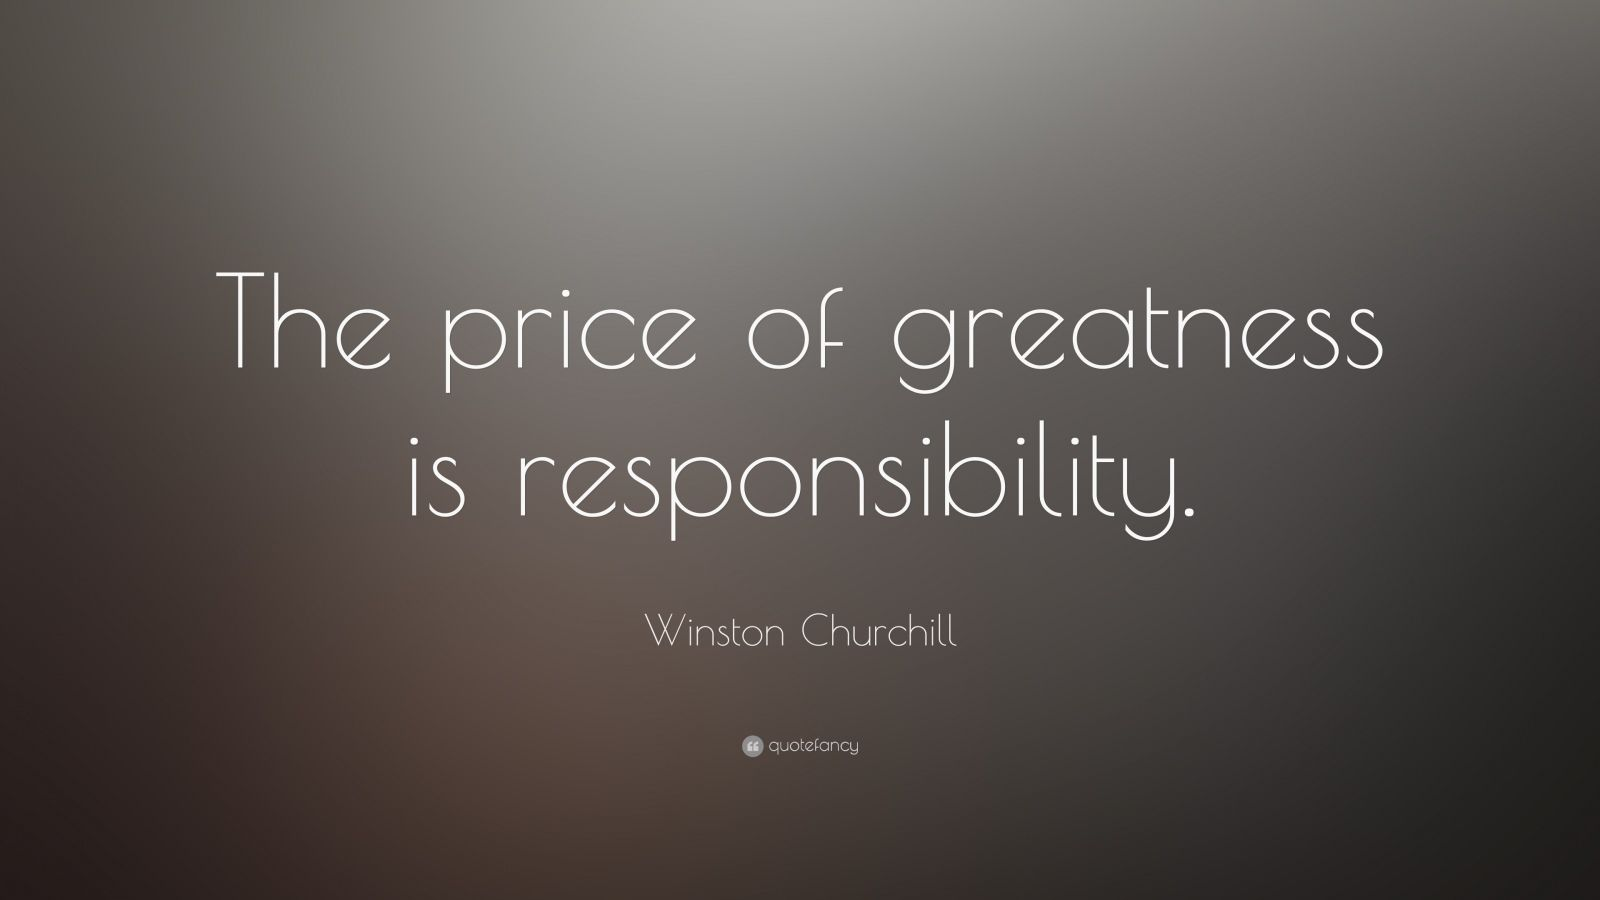 the price of greatness is responsibility winston churchill quotefancy. Black Bedroom Furniture Sets. Home Design Ideas